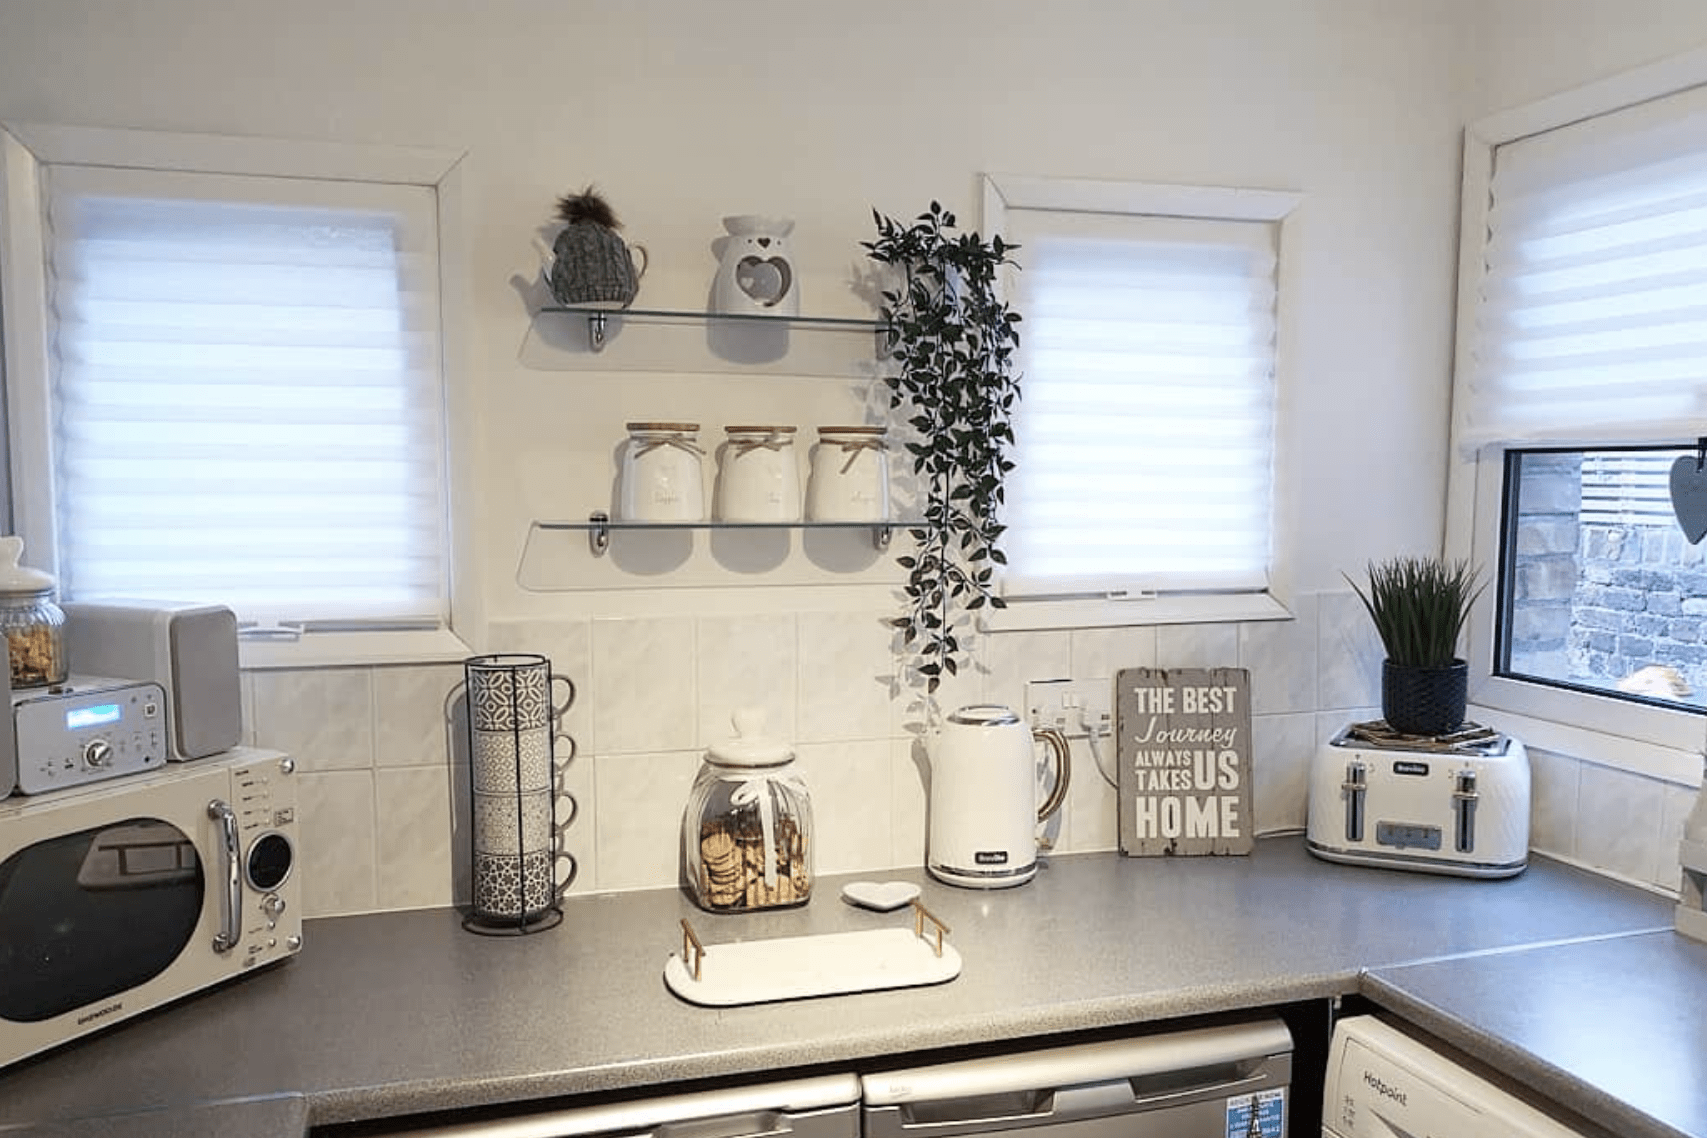 ikea blinds that cost just 3 and can